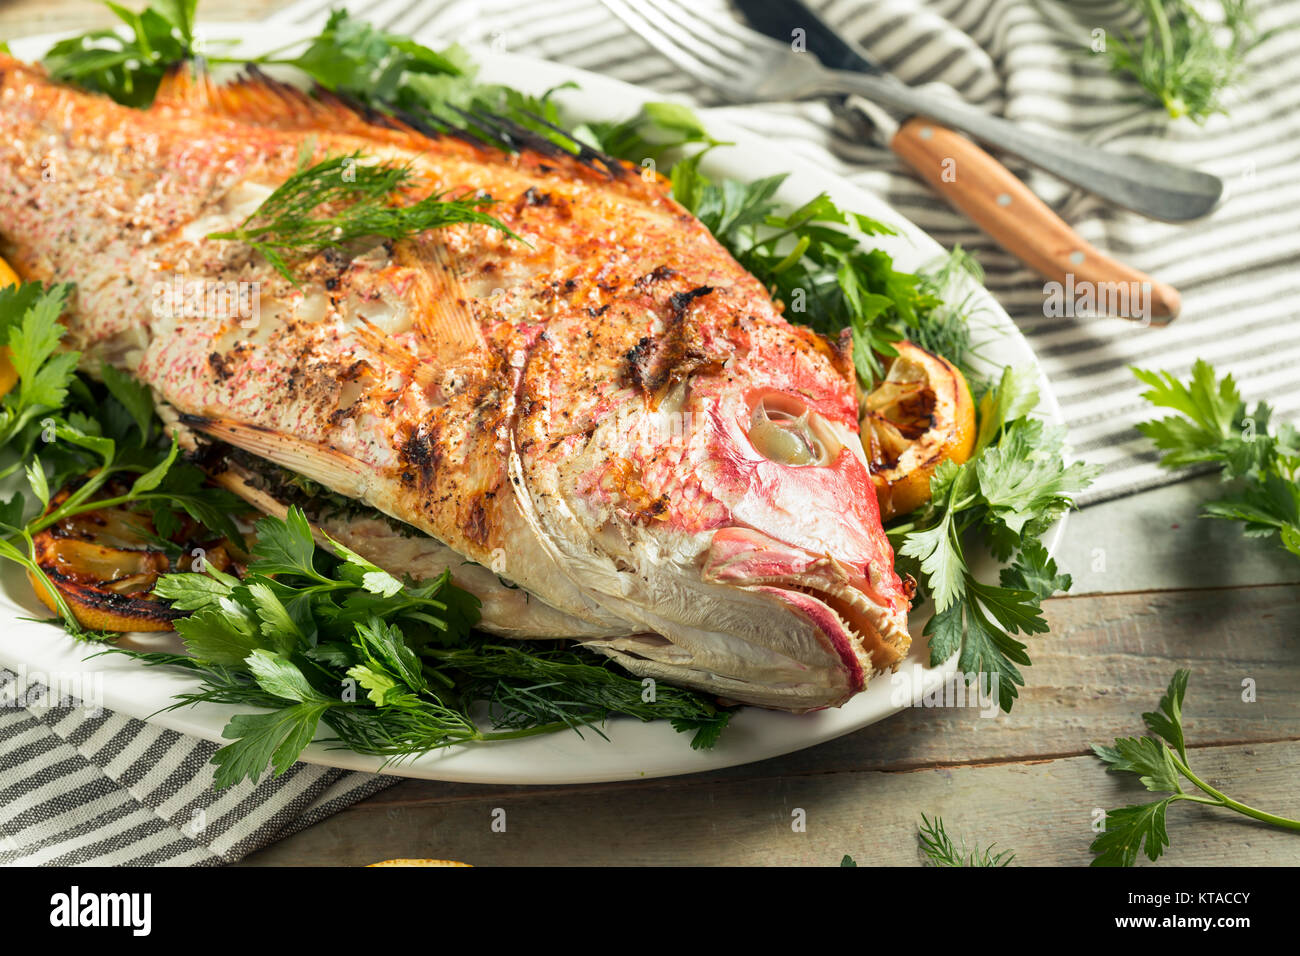 Homemade Grilled Whole Red Snapper with Lemons and Dill Stock Photo